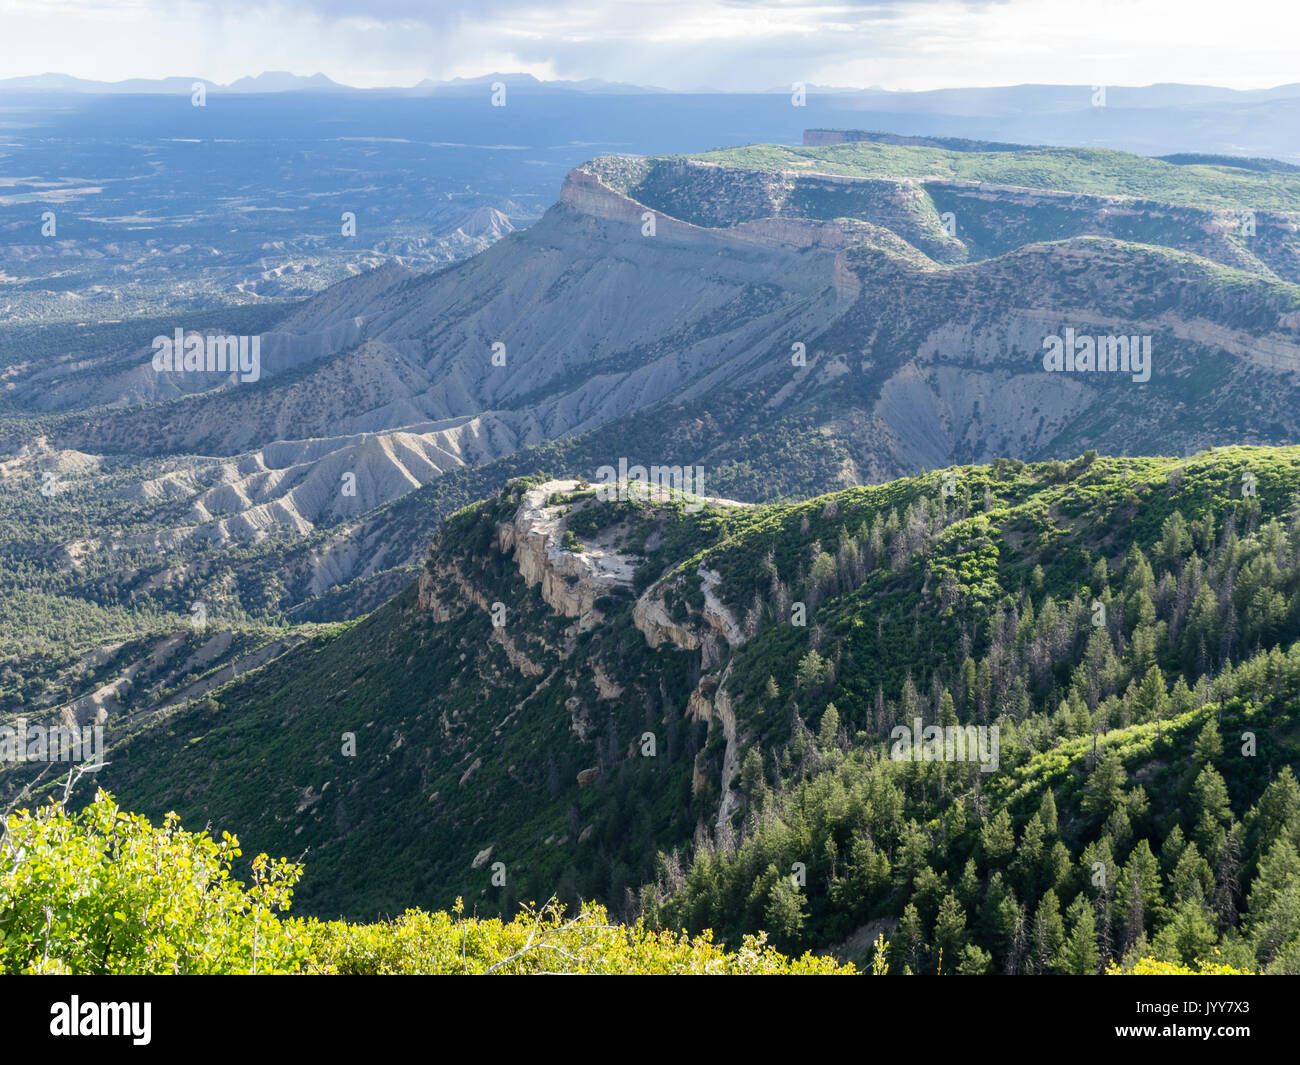 Scenic view from the Mesa Verde elevated plateau across the Mesa Verde tableland and the underlying plains. - Stock Image